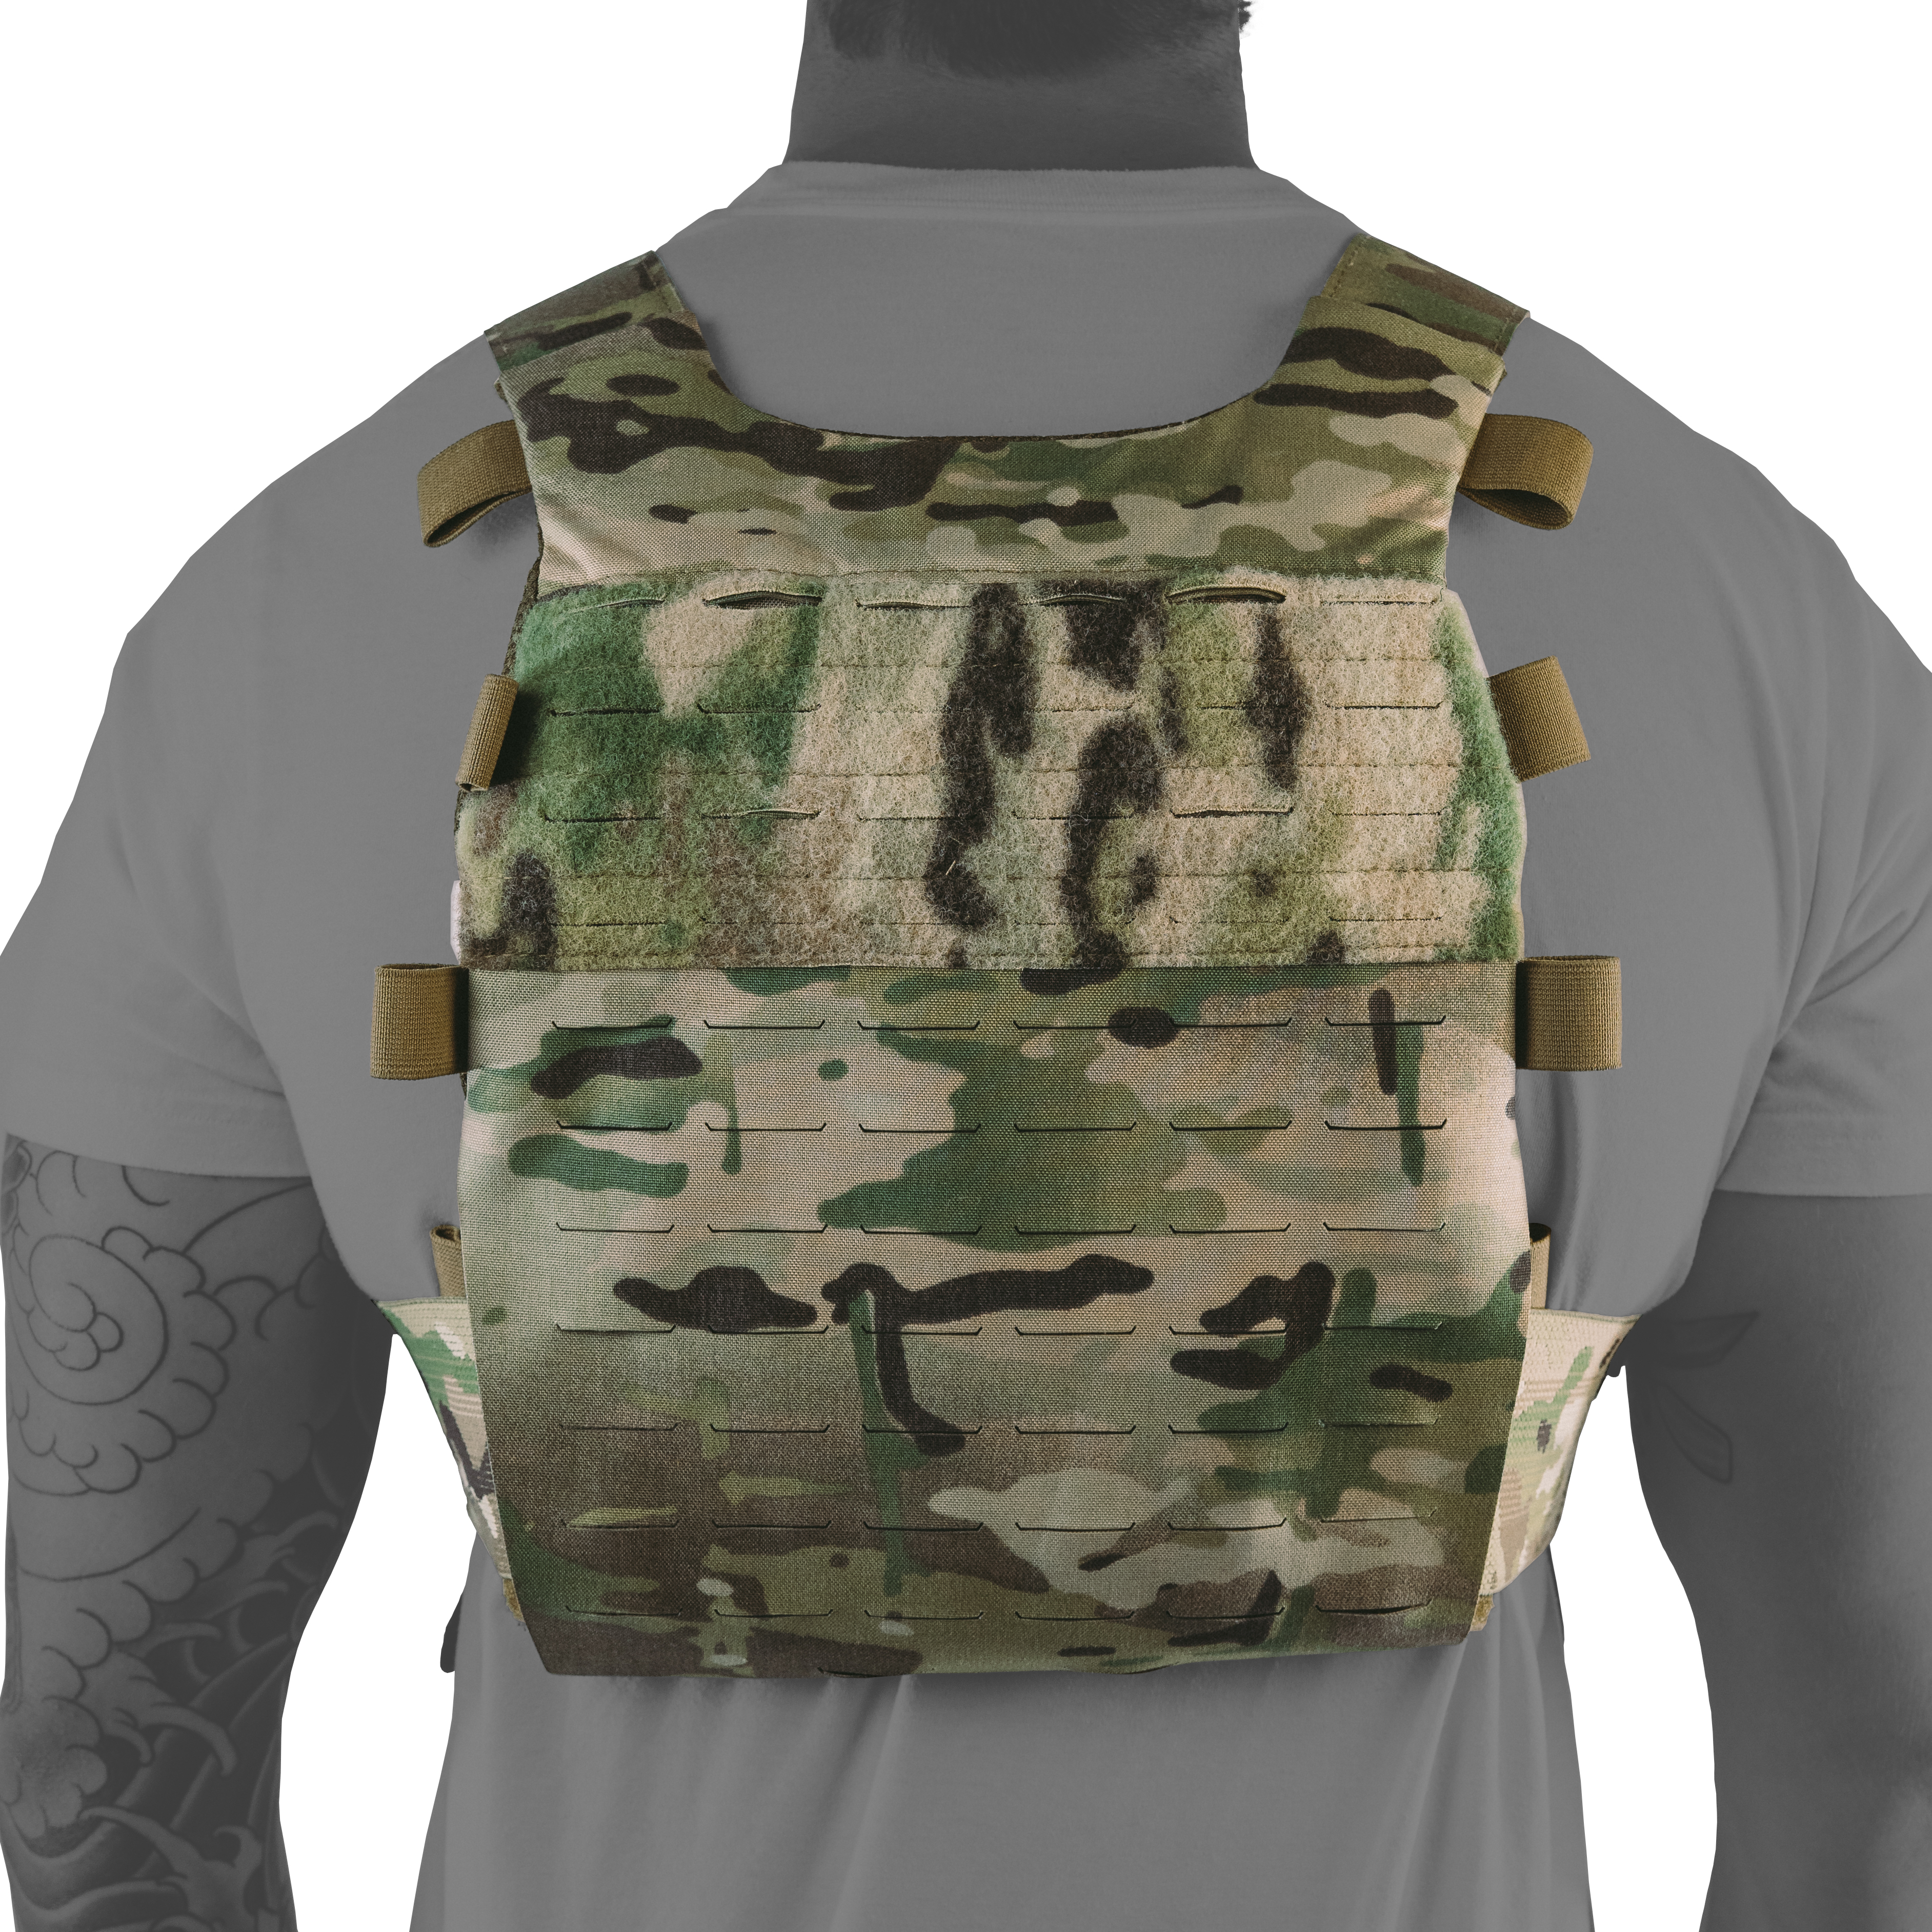 Plate Carrier - RE Factor Advanced Slickster (3)